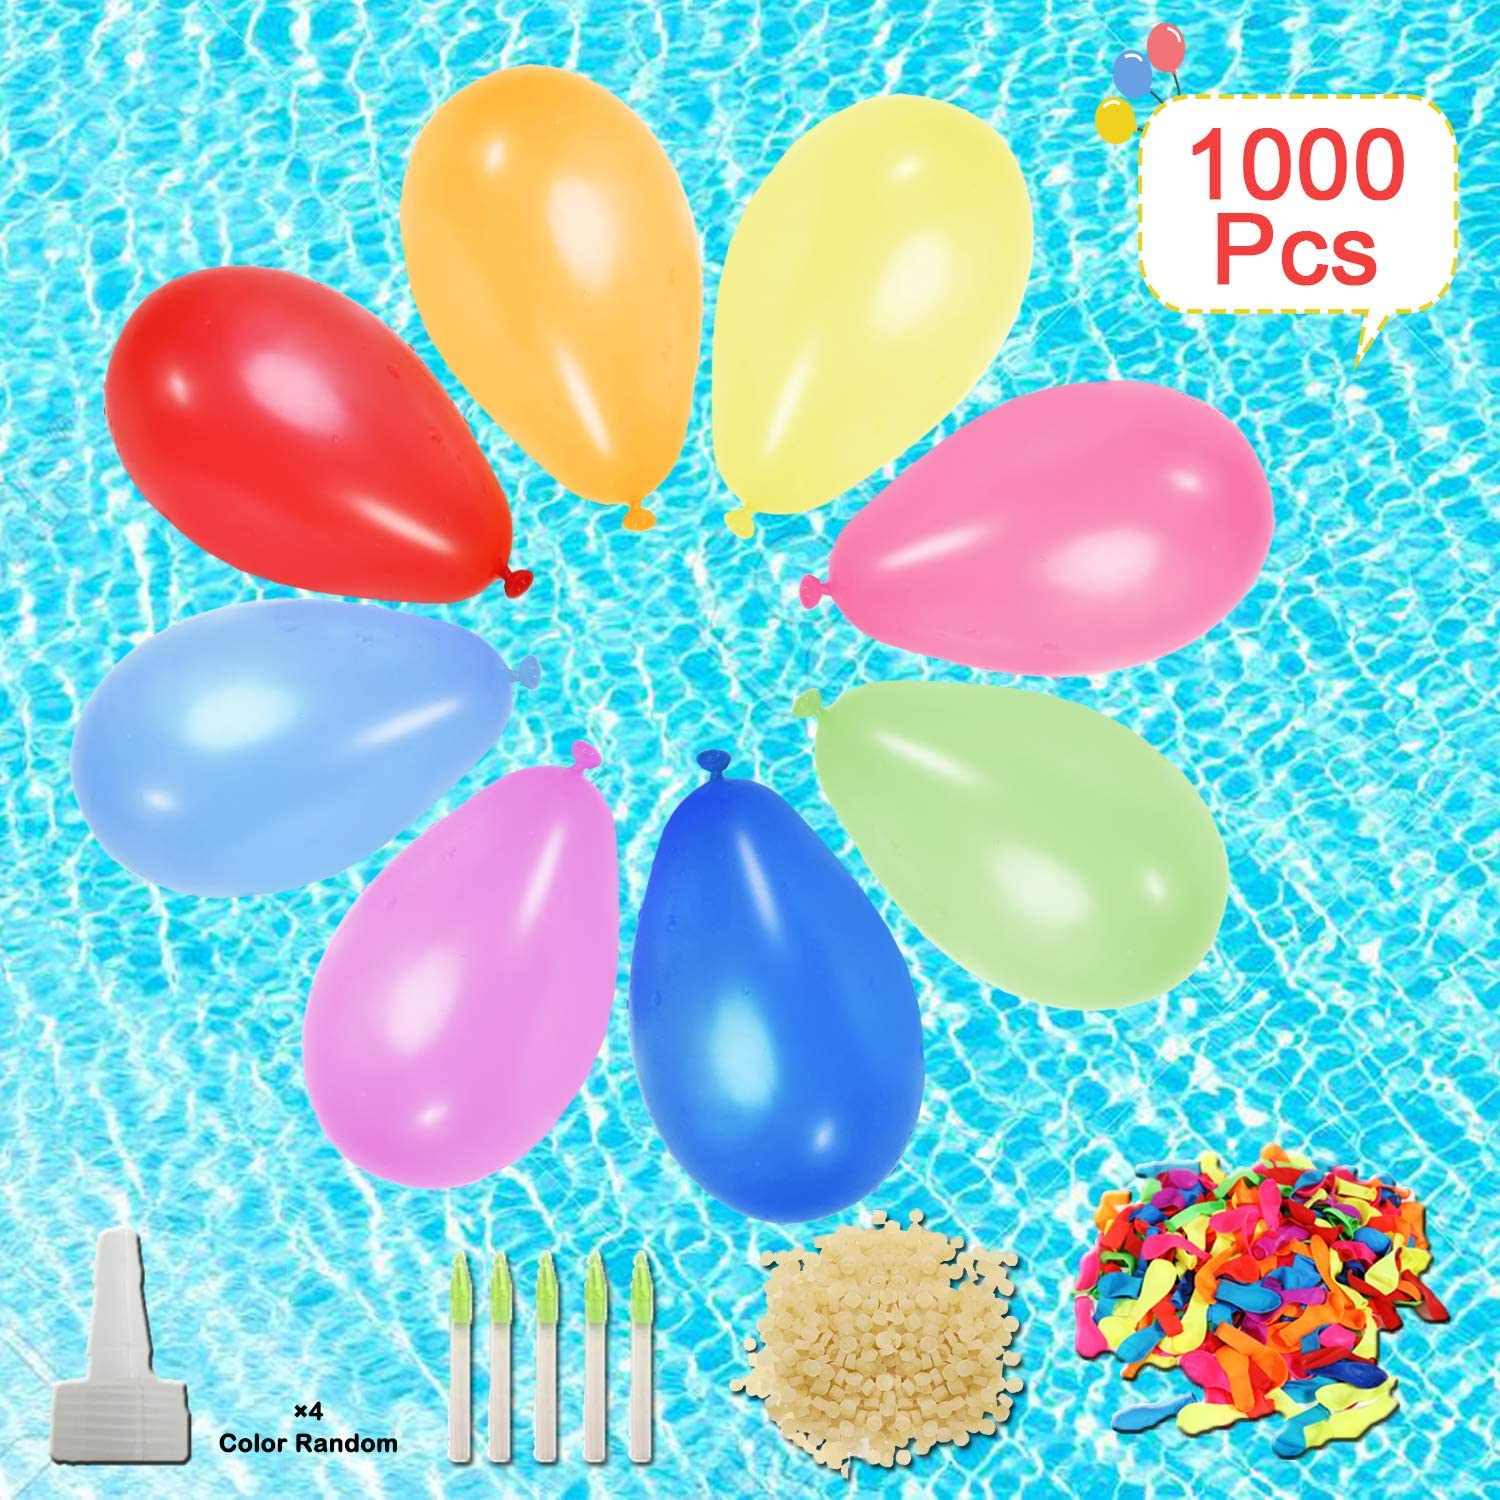 Tuptoel 1000 Pack Water Balloons with Refill Kits, Eco-Friendly Latex Water Bomb Balloons for Party Games - Summer Outdoor Beach Swimming Pool Toys for Kids & Adults